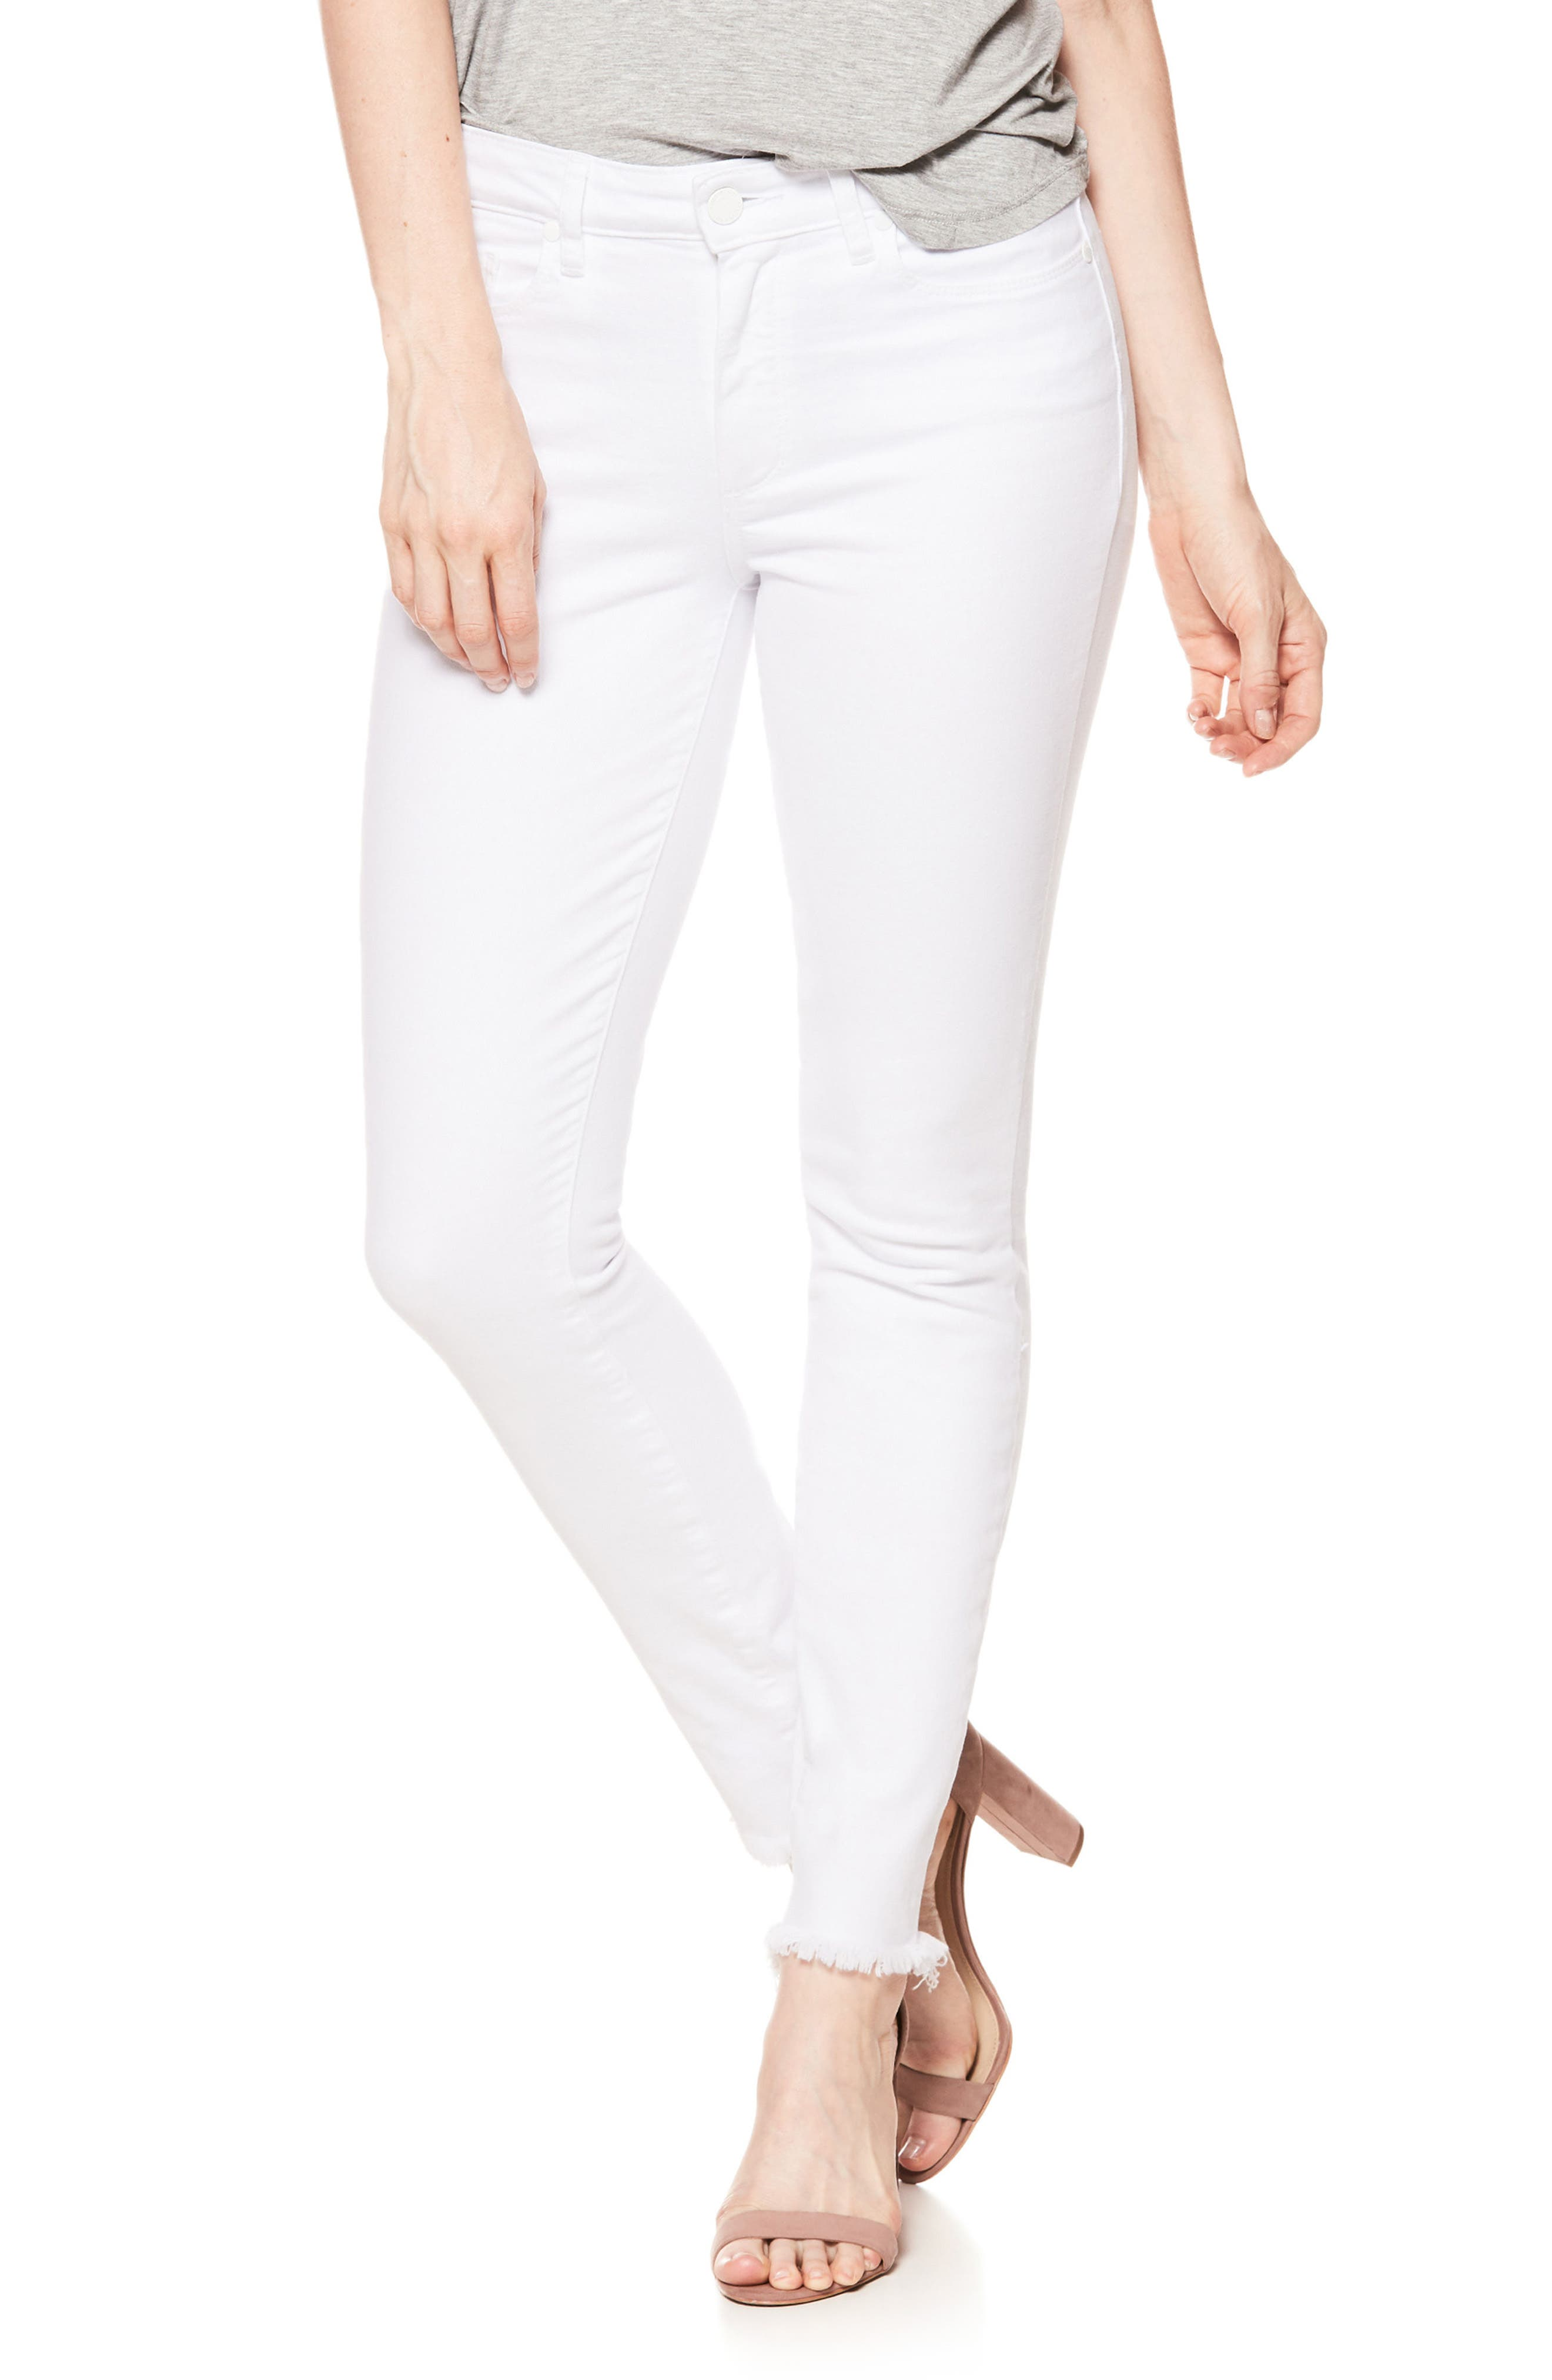 Hoxton High Waist Ankle Skinny Jeans,                             Main thumbnail 1, color,                             Crisp White